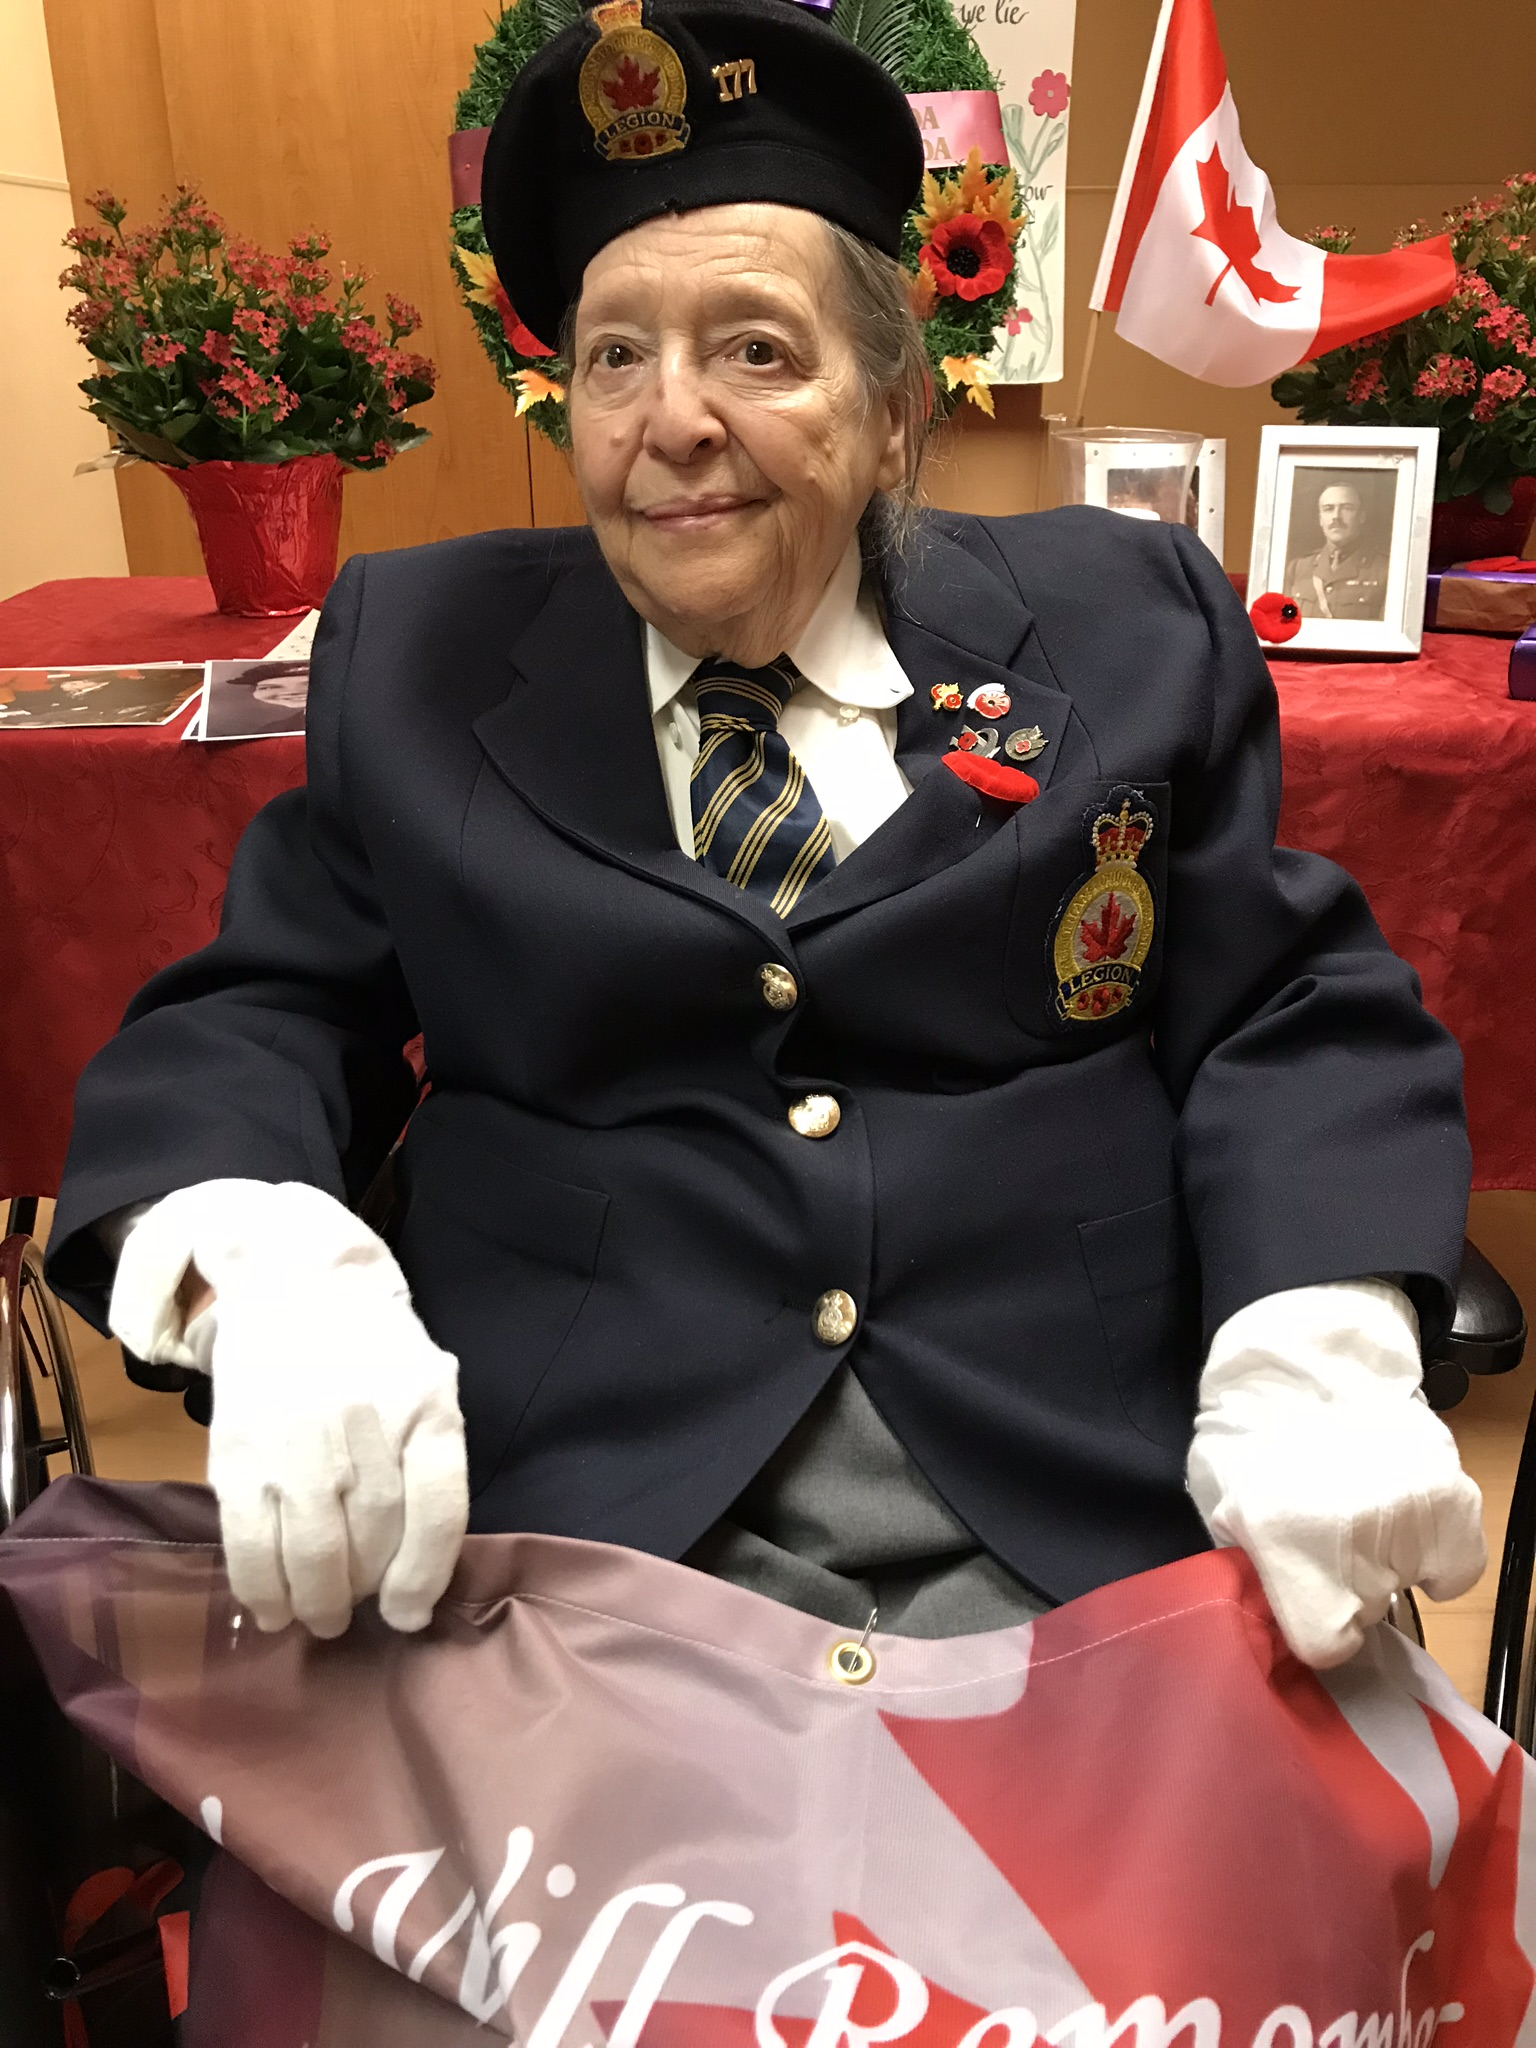 Royal Canadian Air Force veteran Colleen de Serres sitting with flag in her lap.